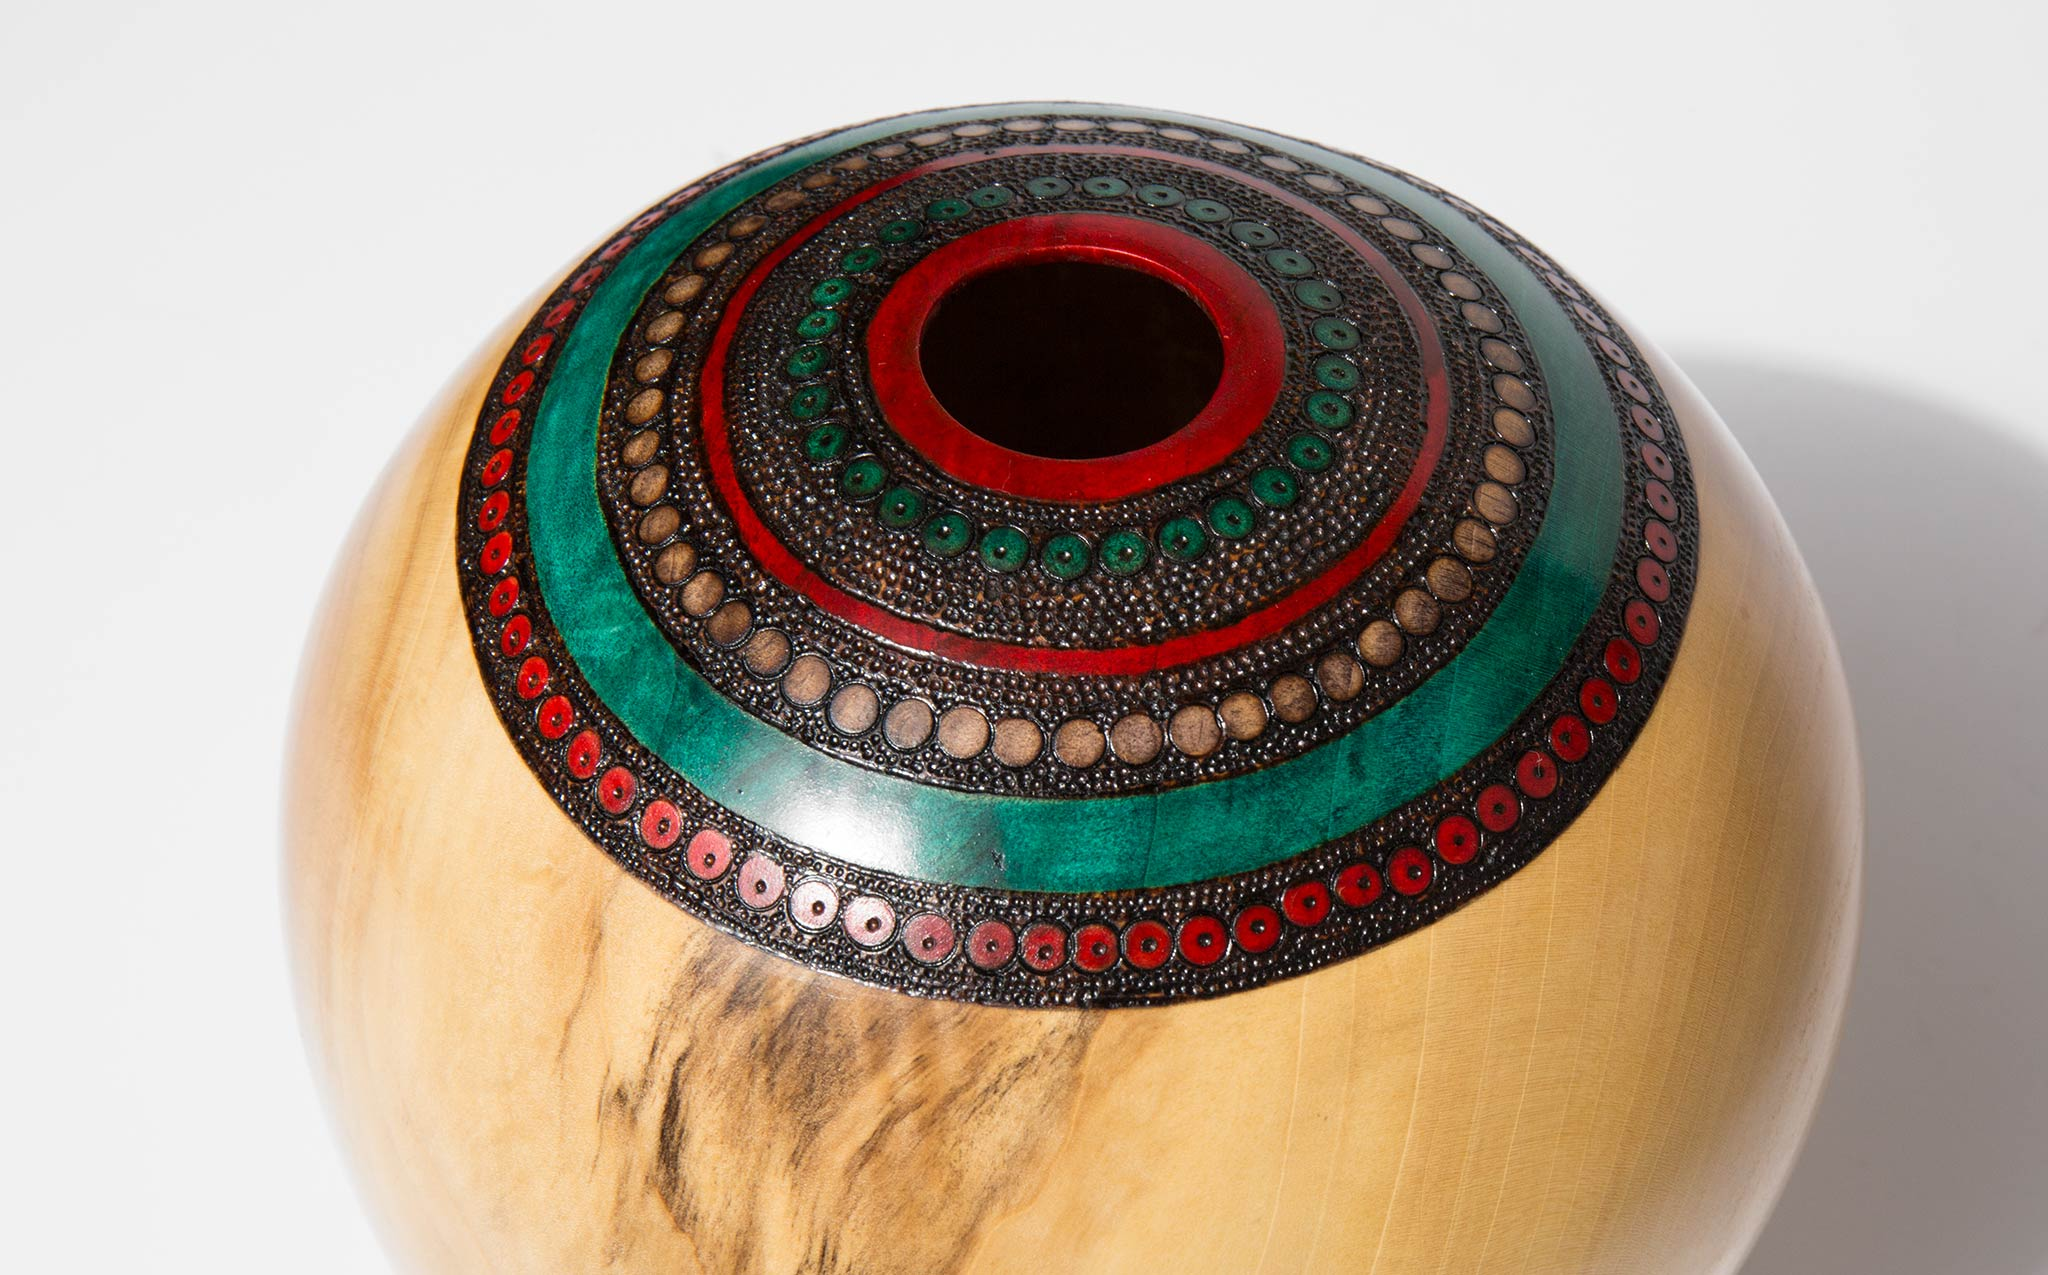 Bruce Perlmutter Hand Lathed Poplar Vessel With Pyrography